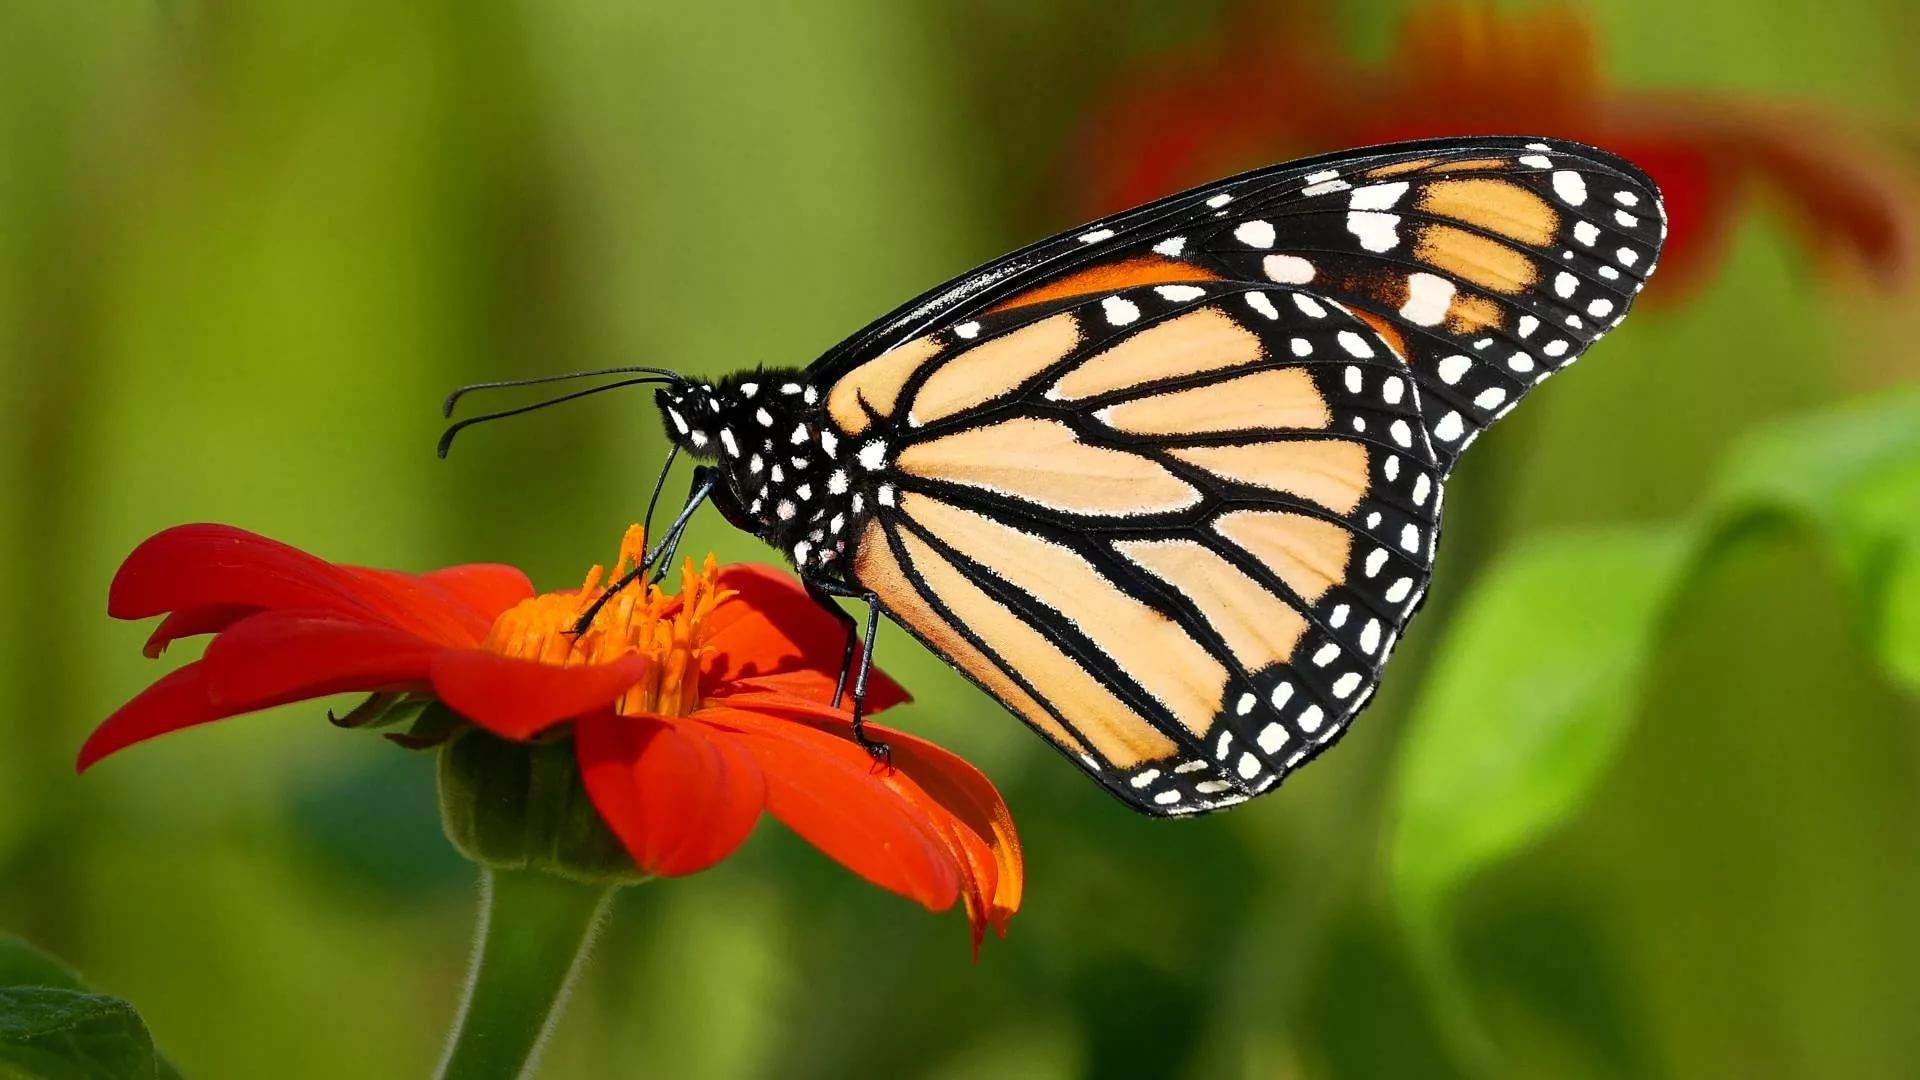 Nice Butterfly wallpaper photo hd